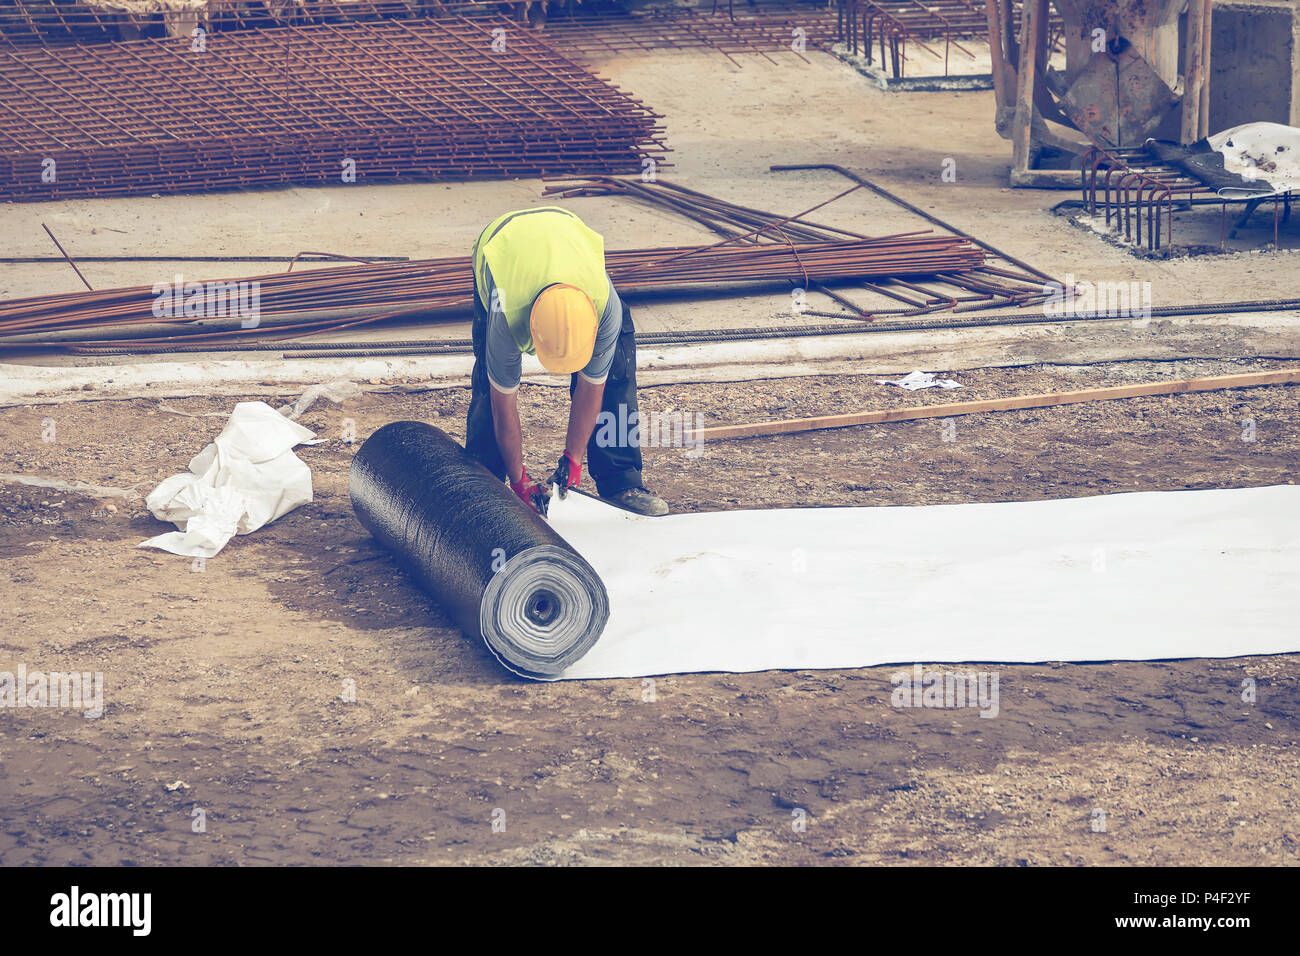 Insulation worker preparing bituminous waterproof membrane for waterproofing and protecting at construction site. Vintage style. - Stock Image